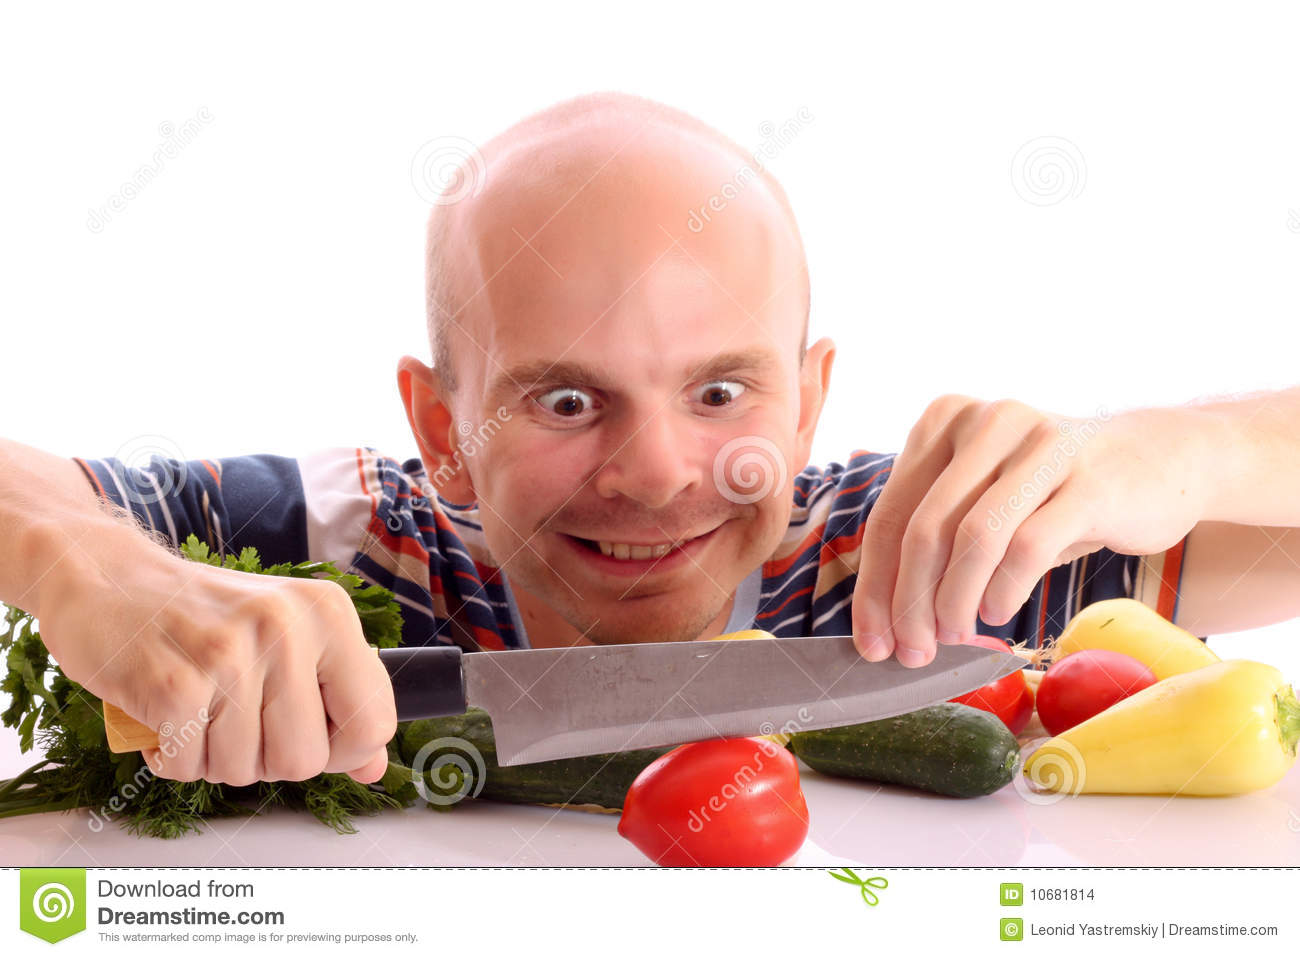 http://thumbs.dreamstime.com/z/crazy-man-cooking-10681814.jpg